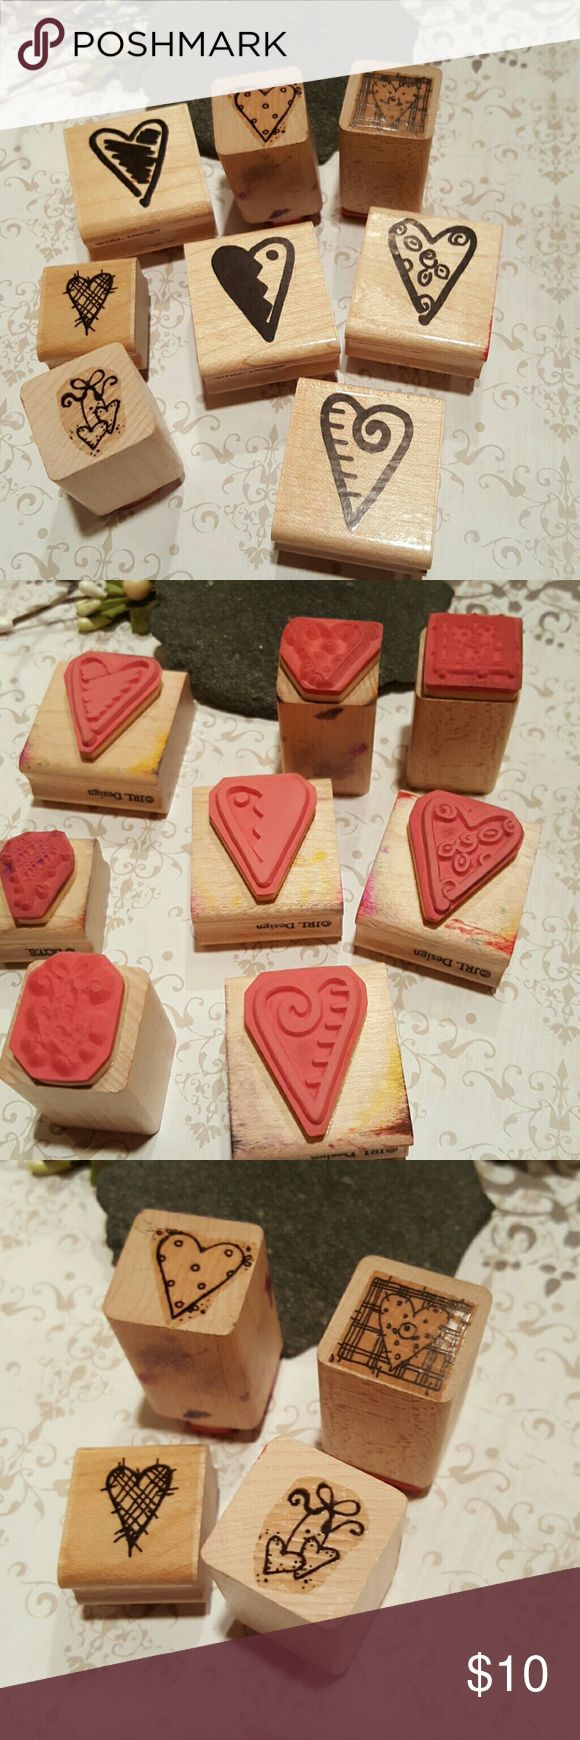 "Lot of Heart Rubber Stamps Lot #8, Eight gently used D.O.T.S rubber stamps. All stamps very well cared for and stored appropriately. Four heart designs are 1.5x1.5 and the others are 1"".  Check out my closet for other rubber stamps. I am willing to bundle and separate the only ones you want.   Bundle discount available. Nonsmoking home. All reasonable offers accepted. D.O.T.S  Other"